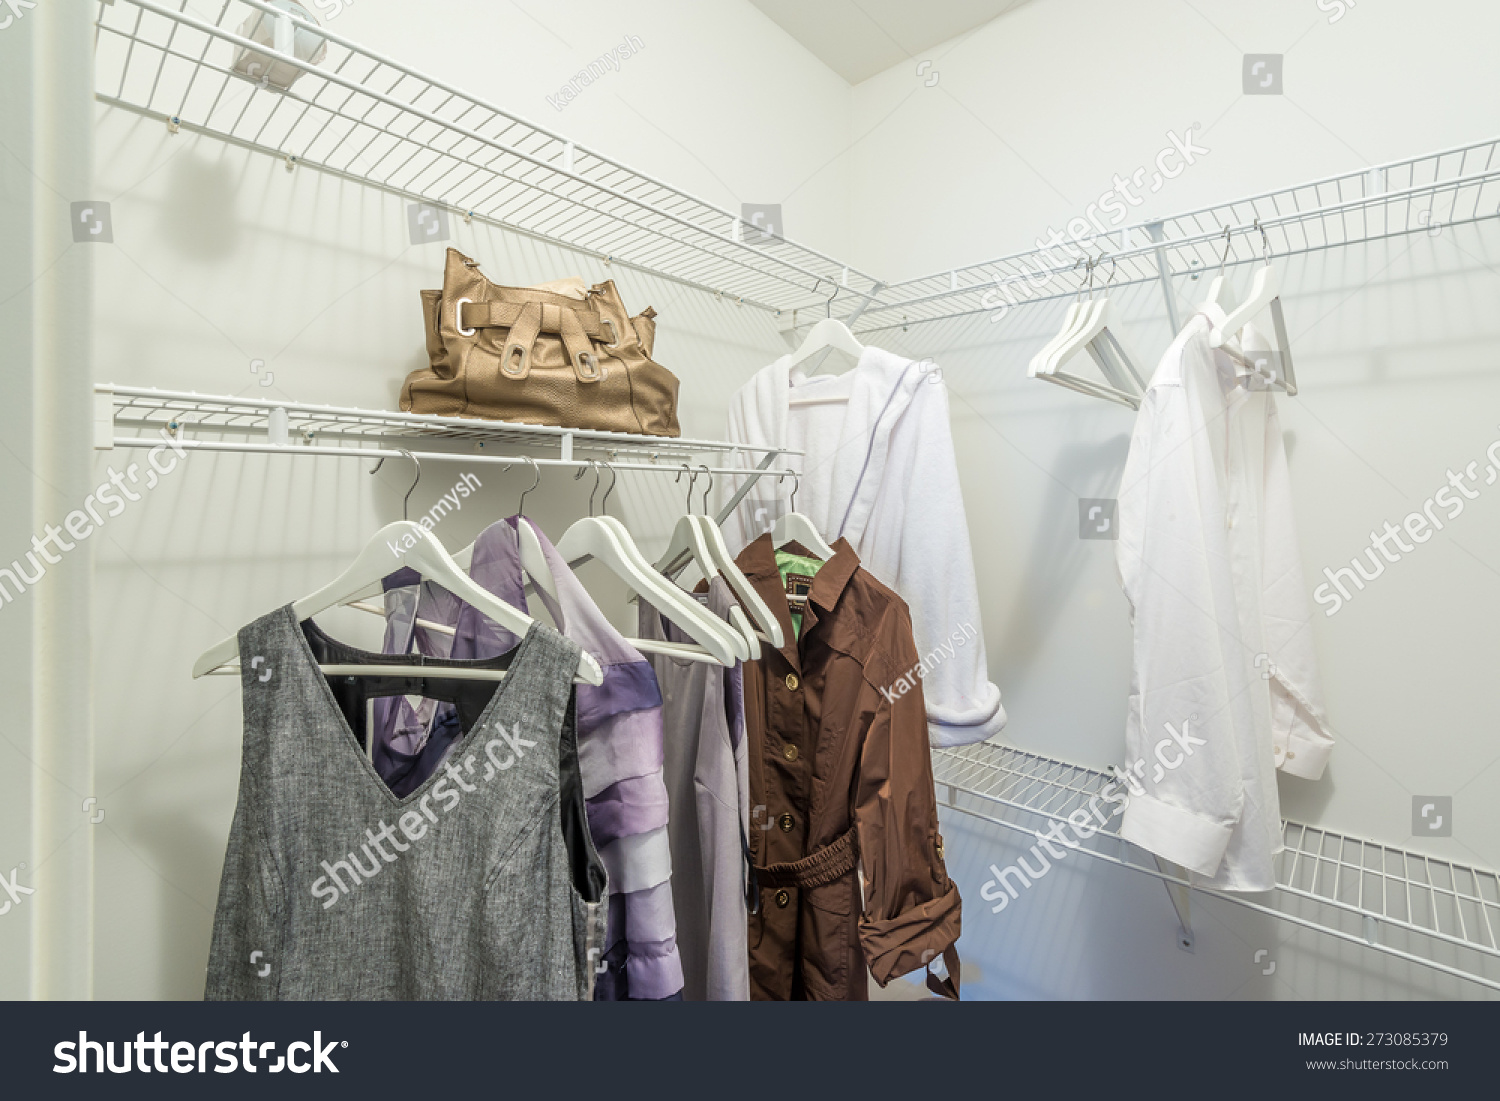 Charmant A Clothing Closet, Working Closet, Cupboard In Bedroom.